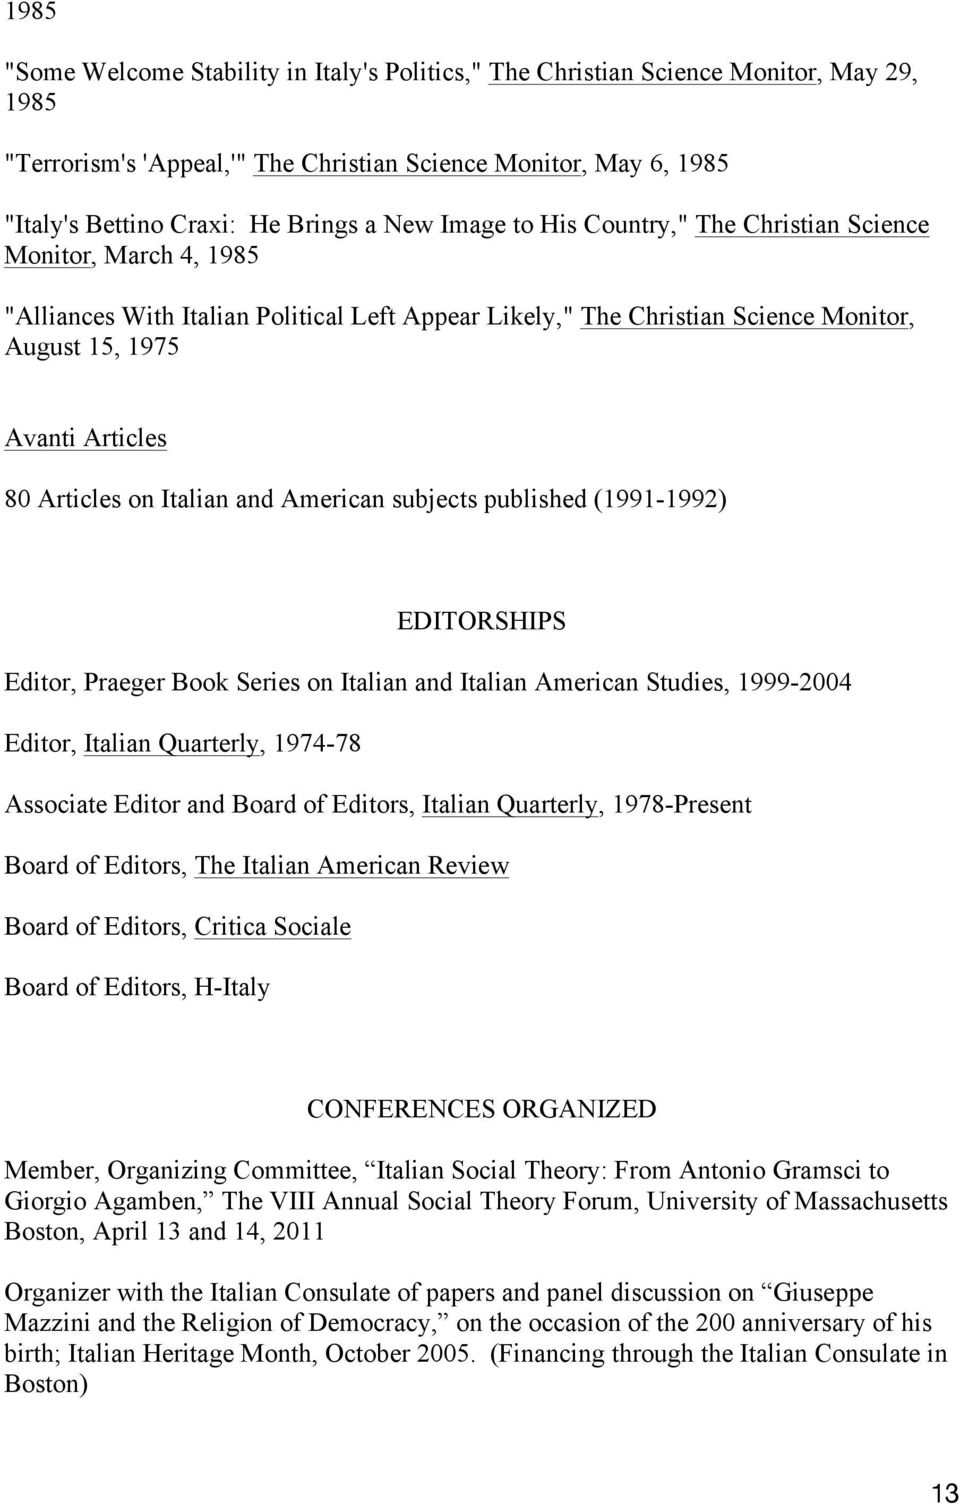 Articles on Italian and American subjects published (1991-1992) EDITORSHIPS Editor, Praeger Book Series on Italian and Italian American Studies, 1999-2004 Editor, Italian Quarterly, 1974-78 Associate